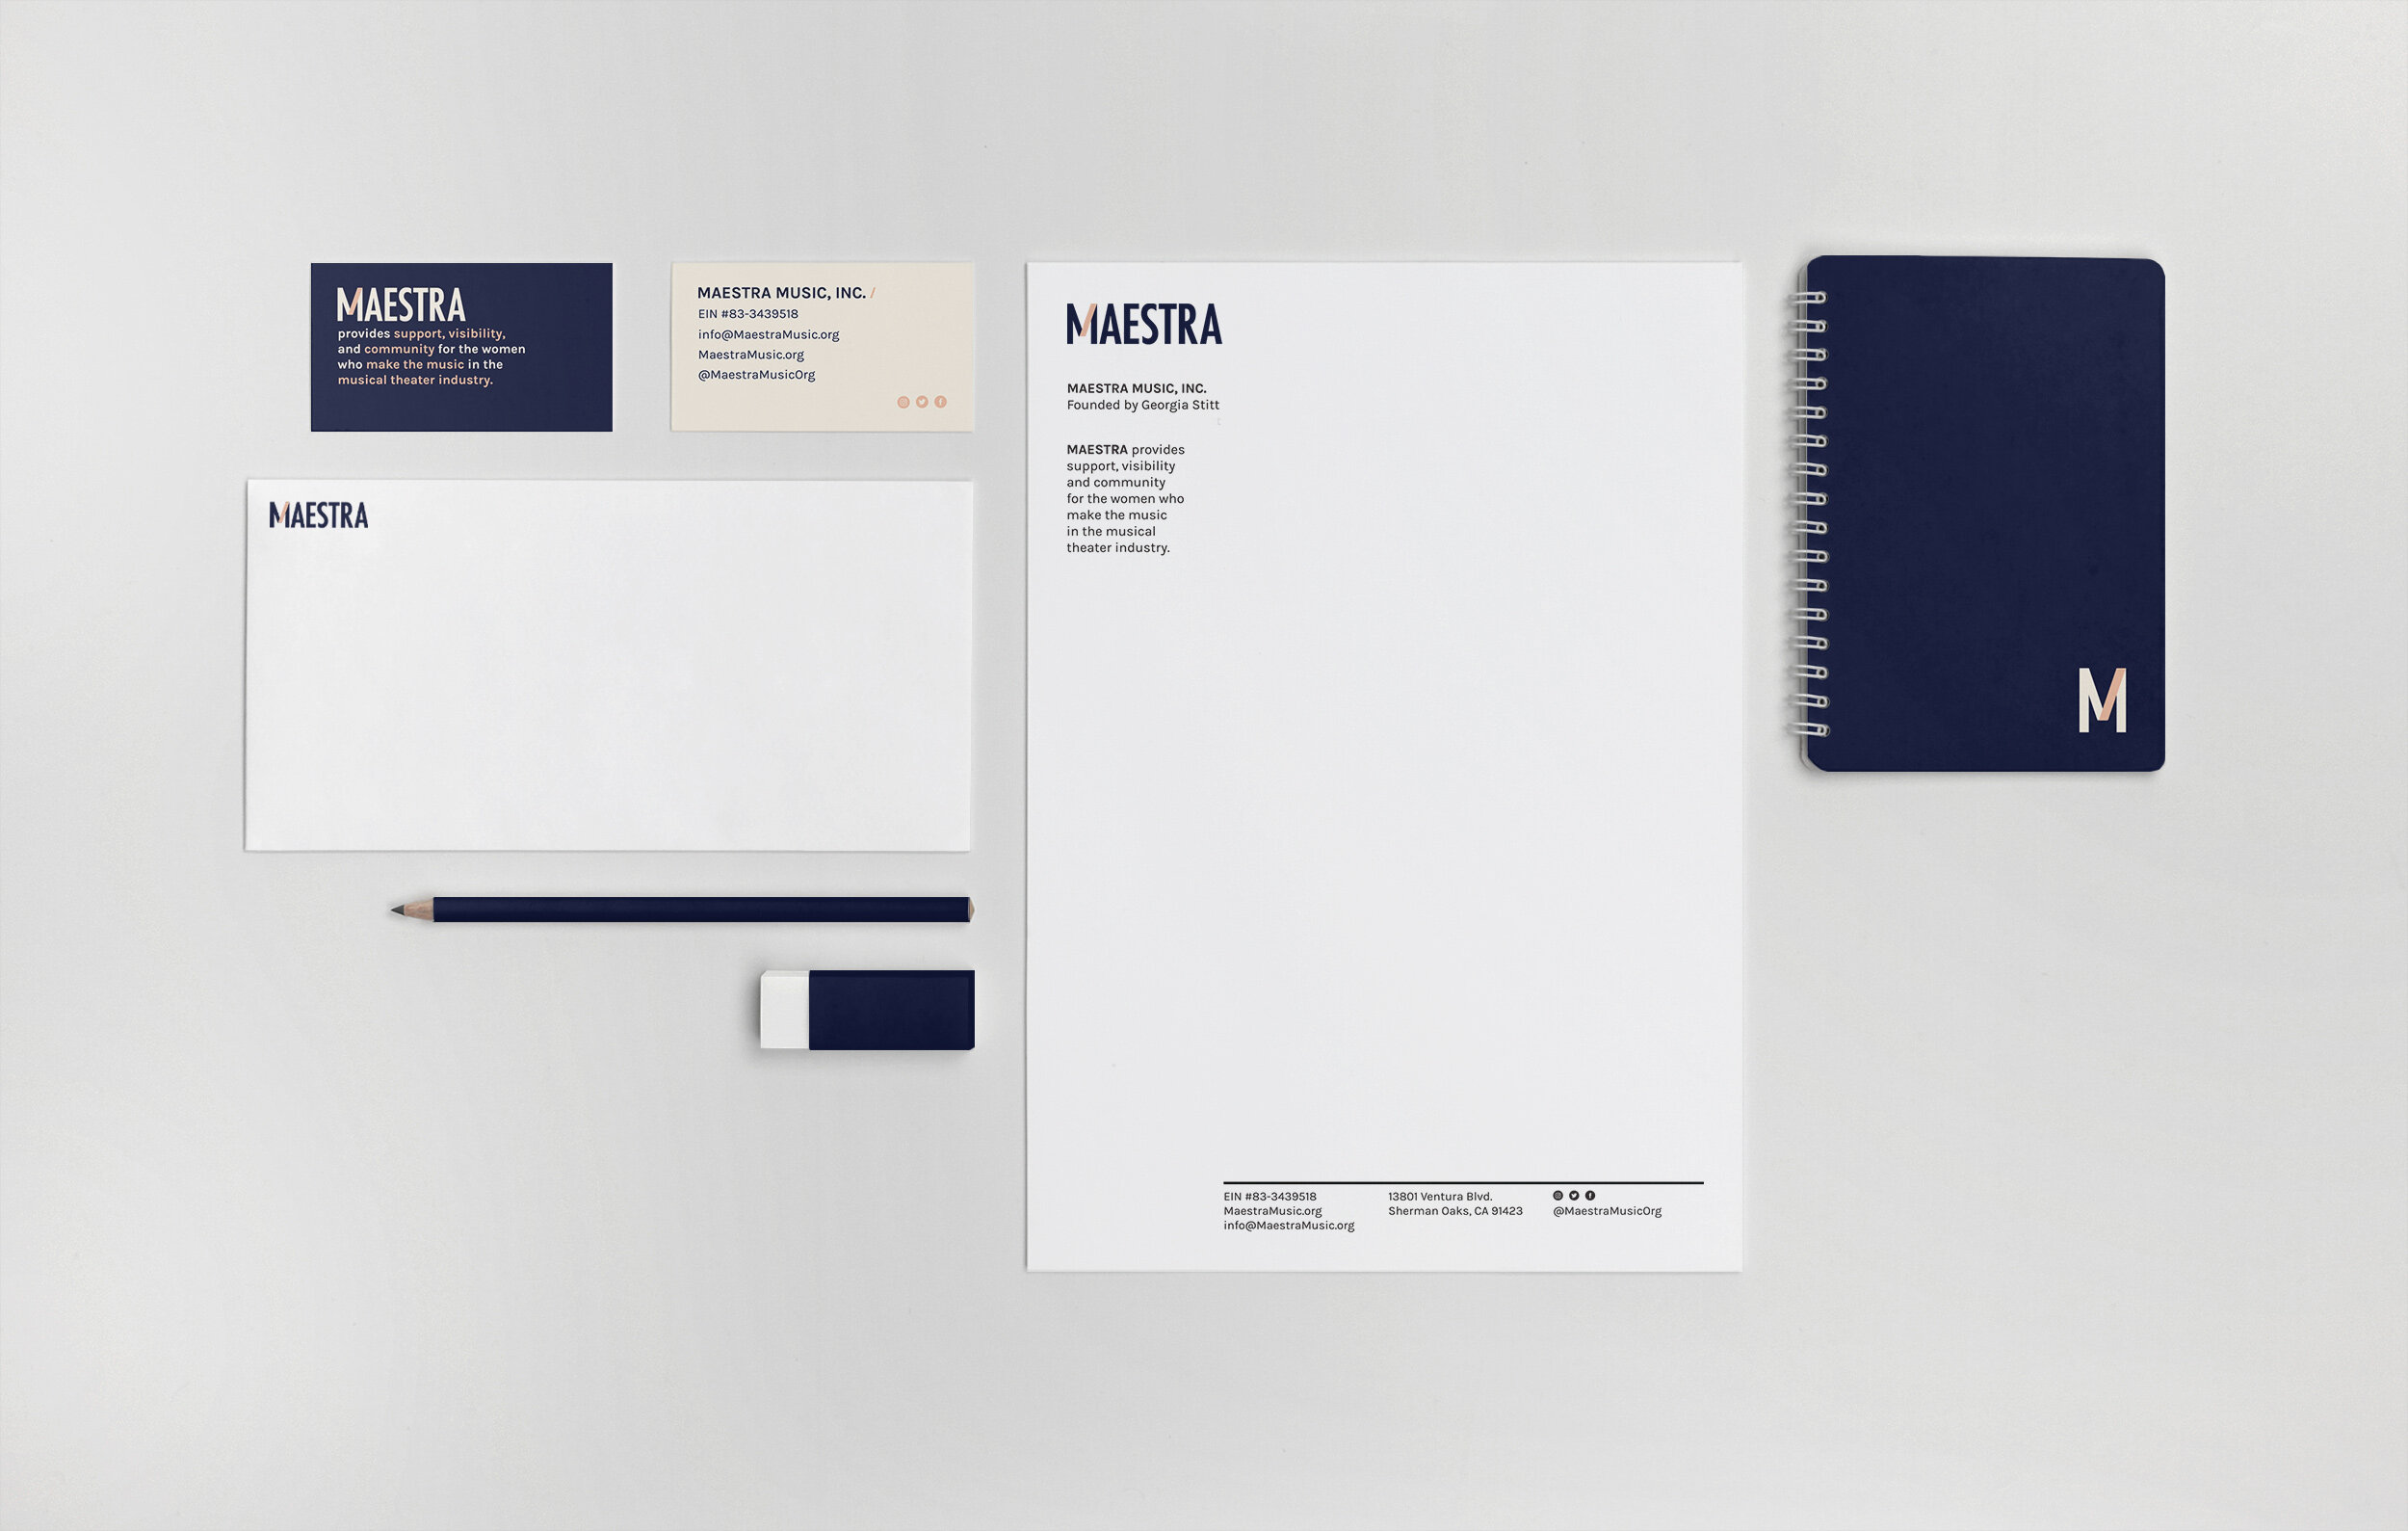 Office supplies with navy branding laid out on a gray background.